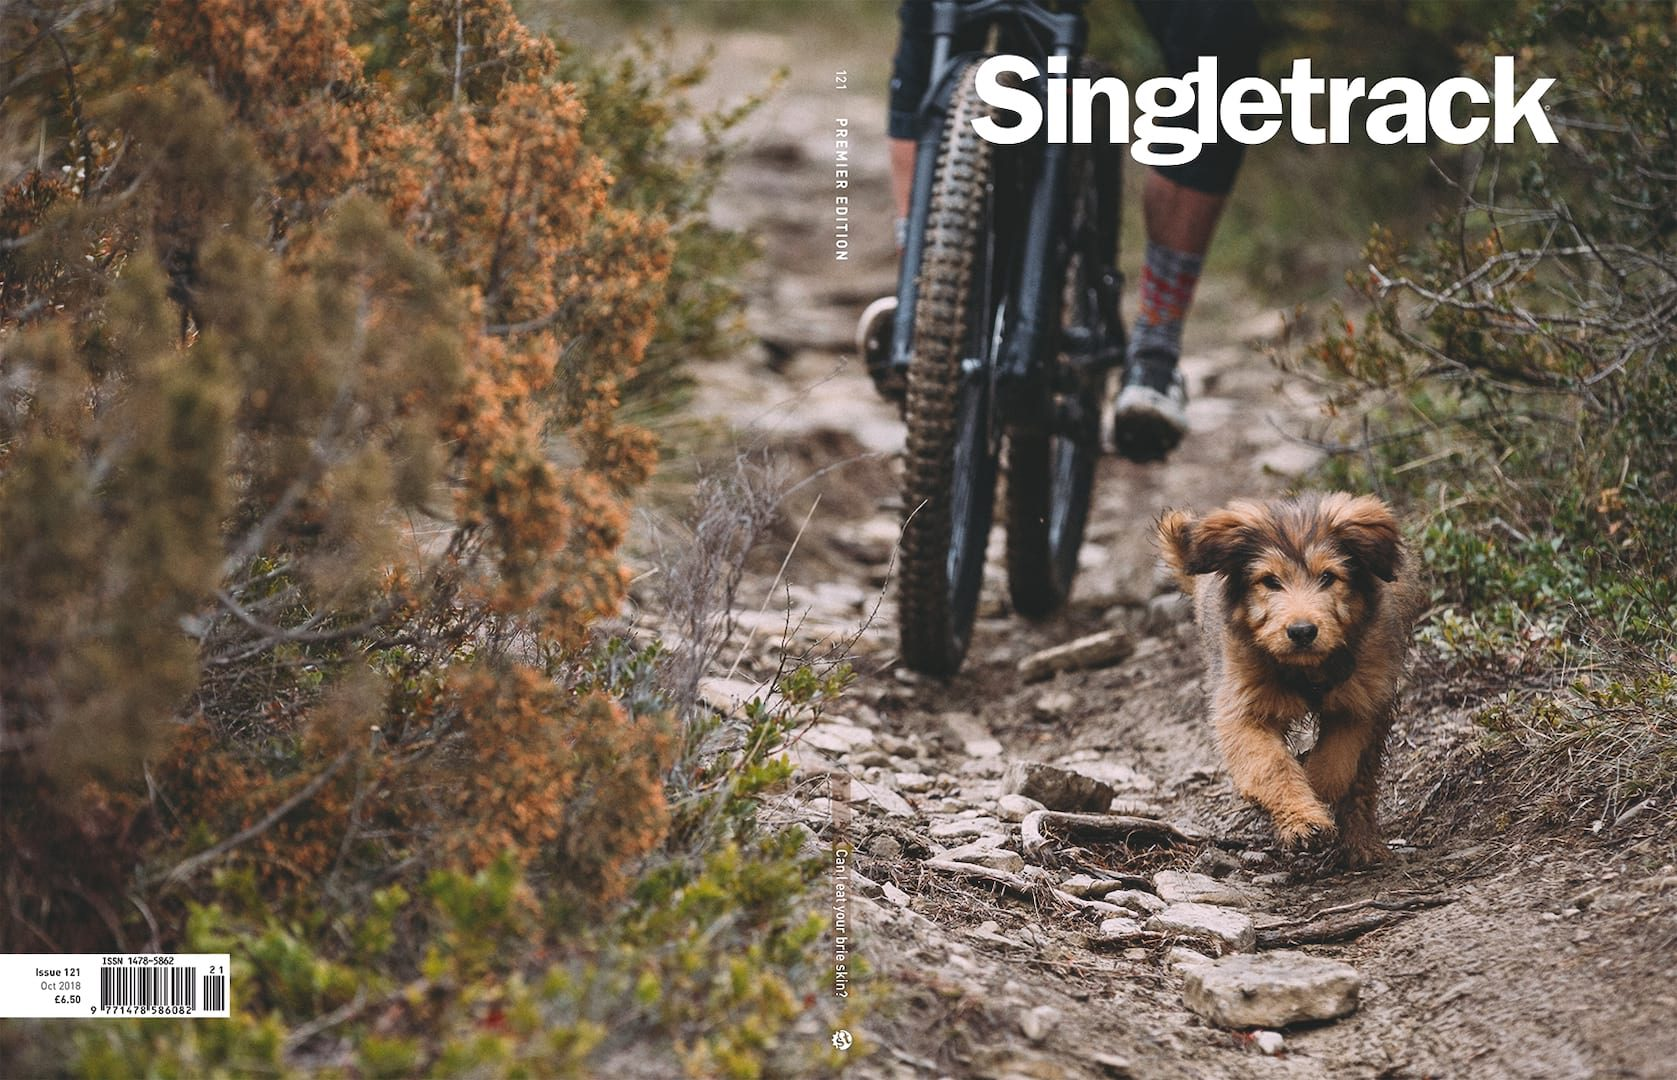 singletrack magazine cover 121